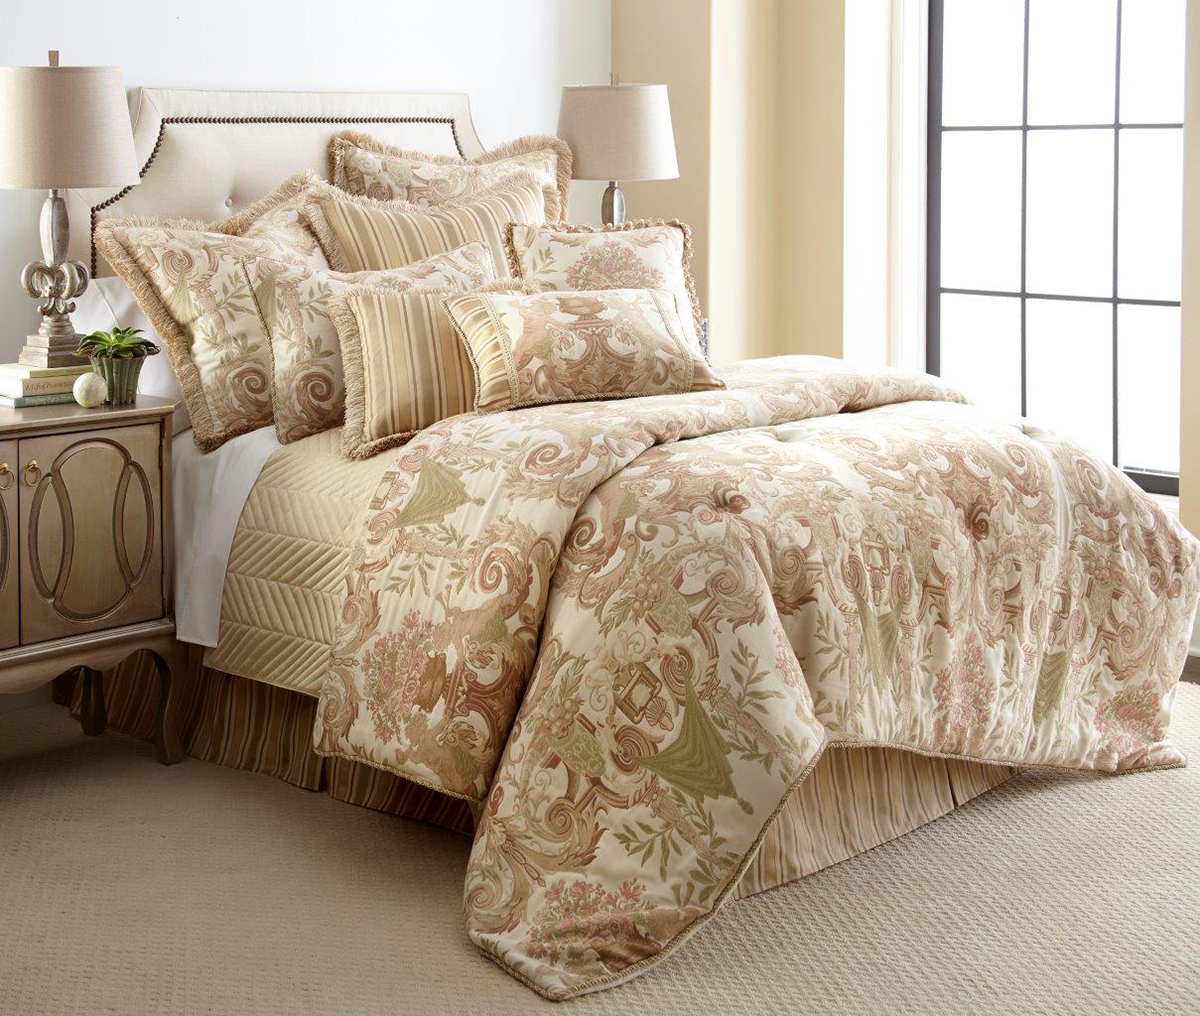 Cherub By Austin Horn Luxury Bedding Beddingsuperstore Com